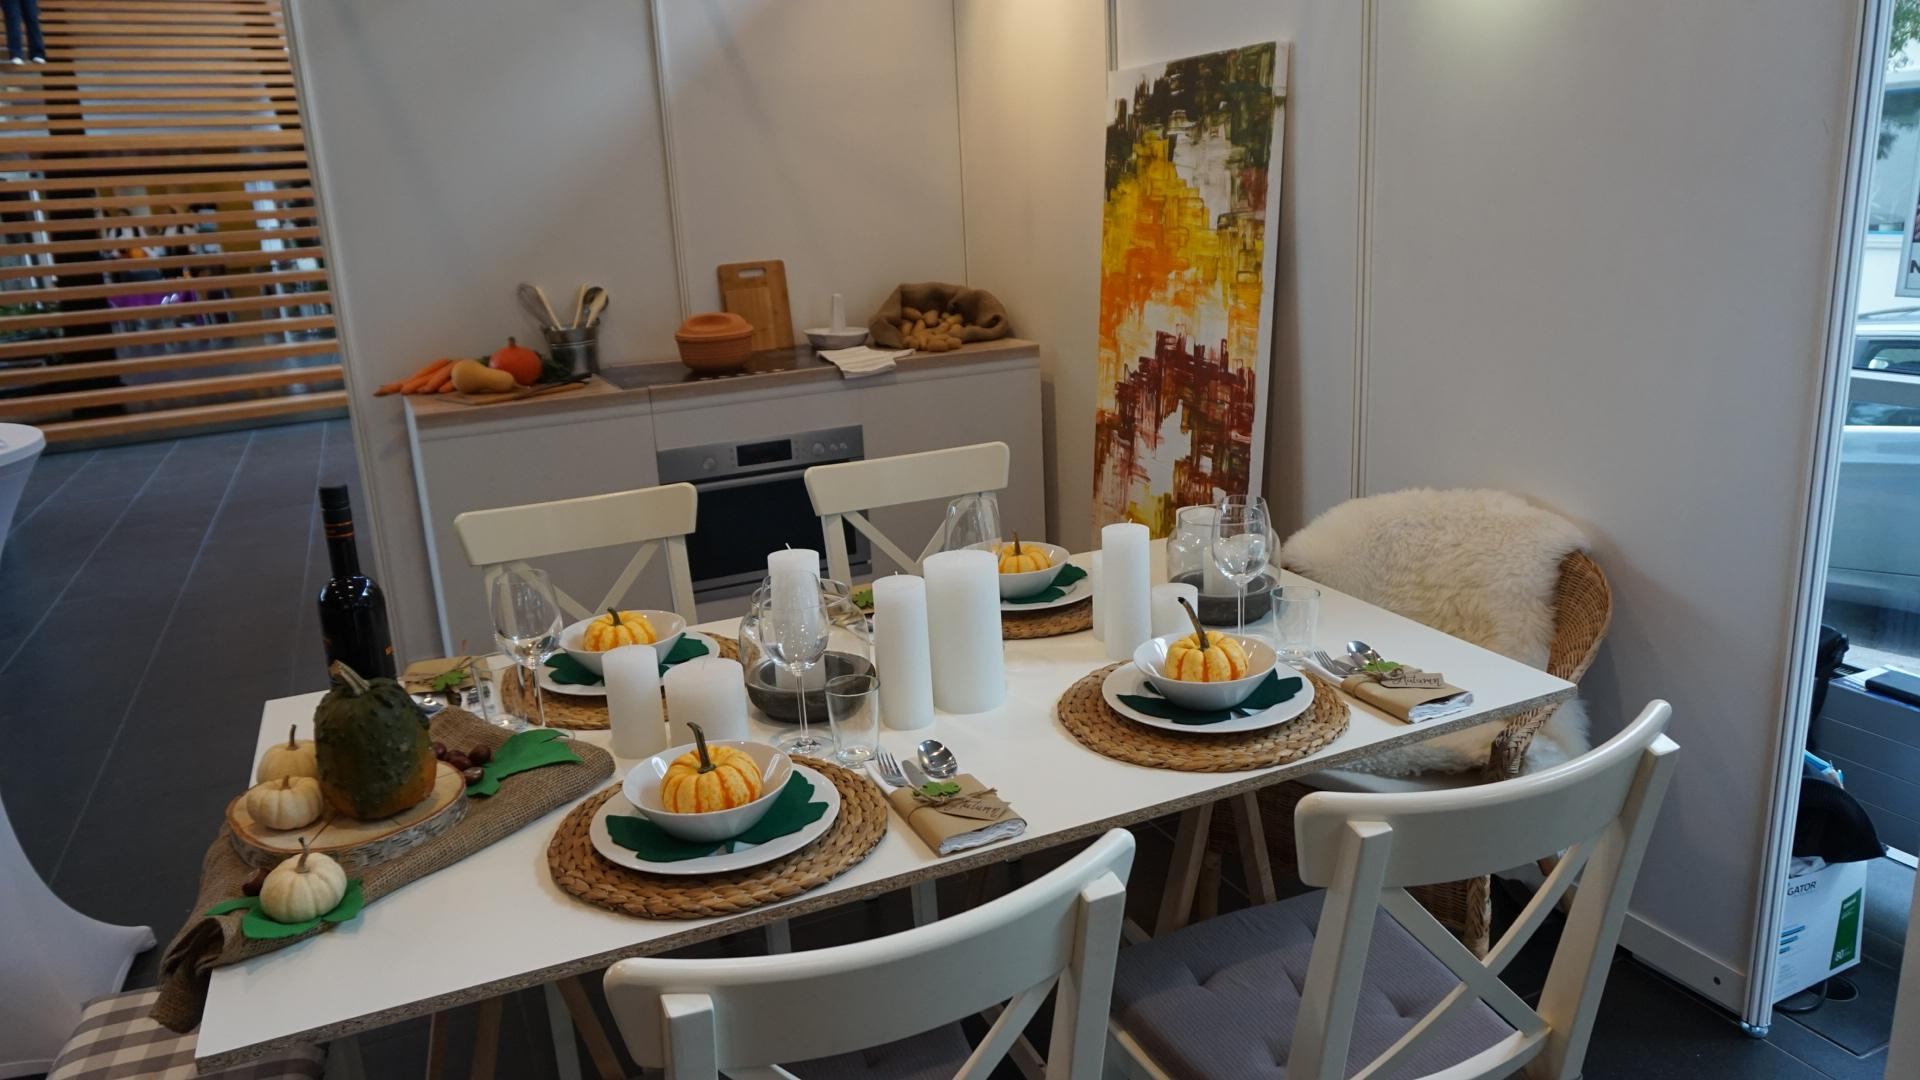 Messestand #küche #essplatz ©Home Staging Nadine Fischer